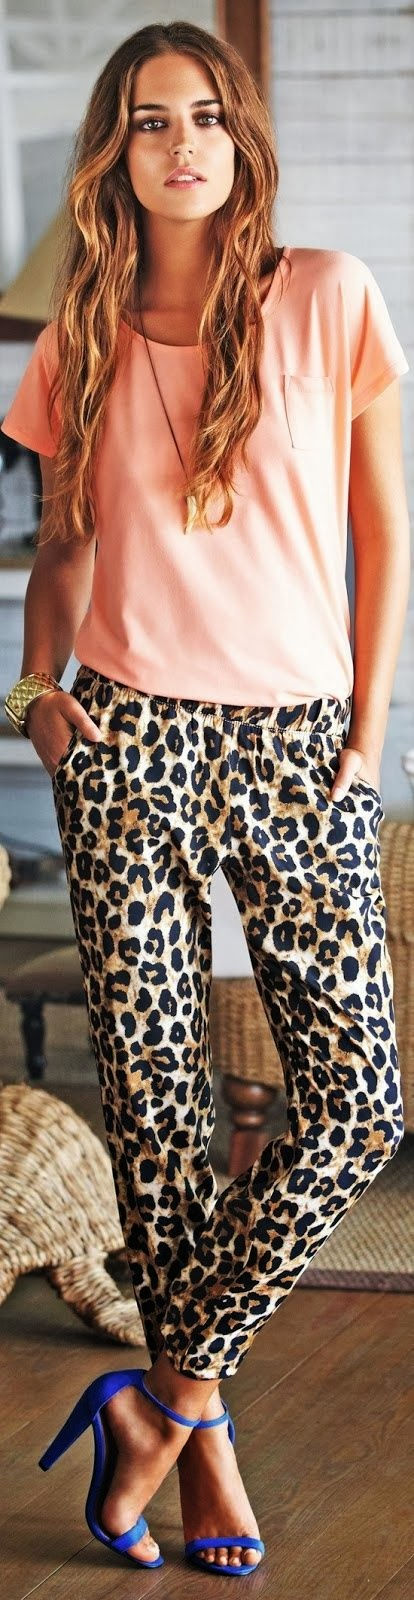 Cheetah Skin Pajamas and Pink Shirt